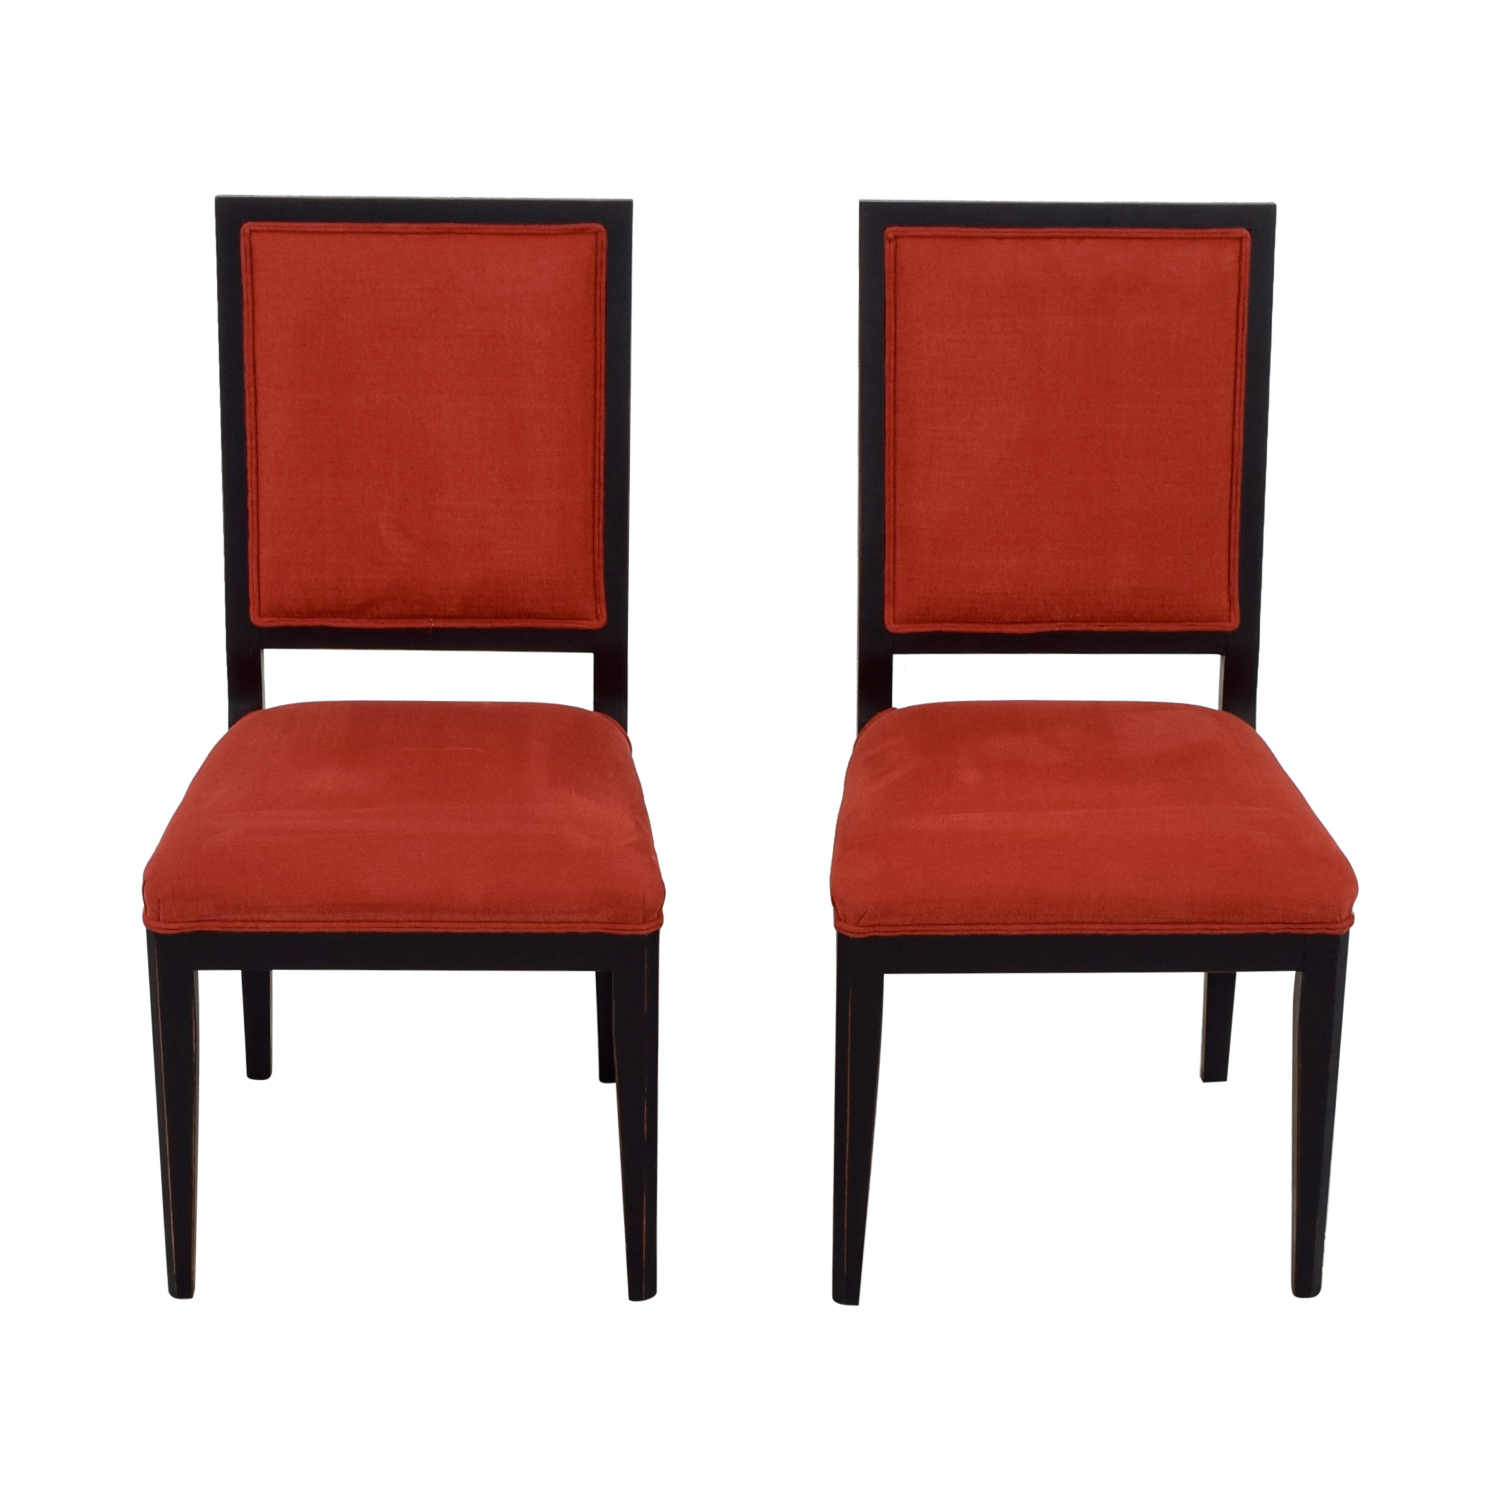 Delicieux ... Buy Buying And Design Buying And Design Red Upholstered Dining Chairs  Online ...